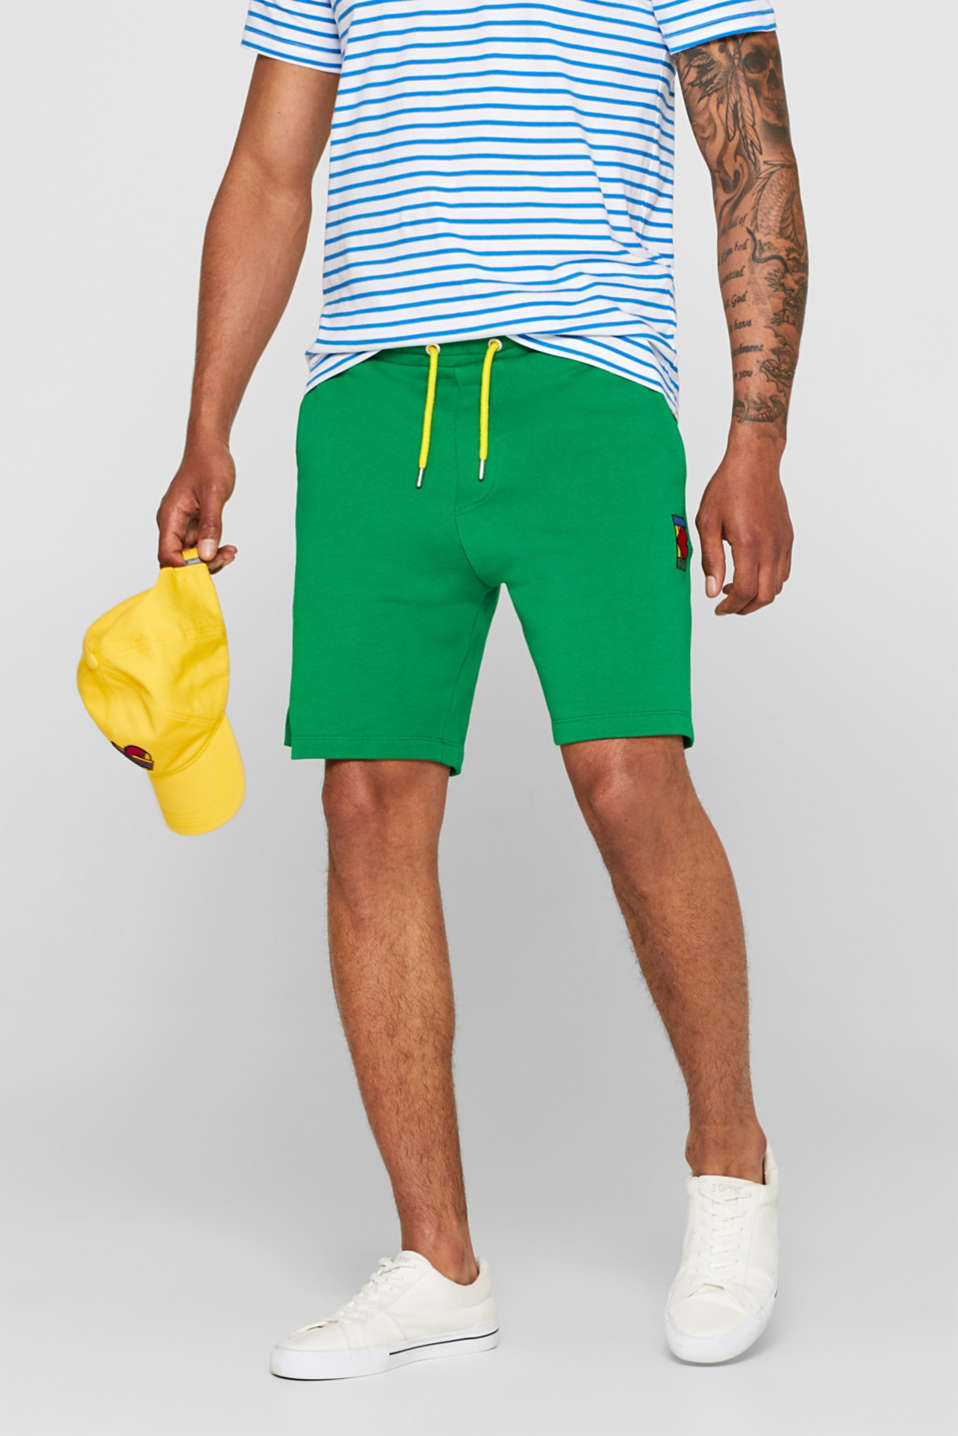 Esprit - CRAIG & KARL: men sweatshort, organic cotton